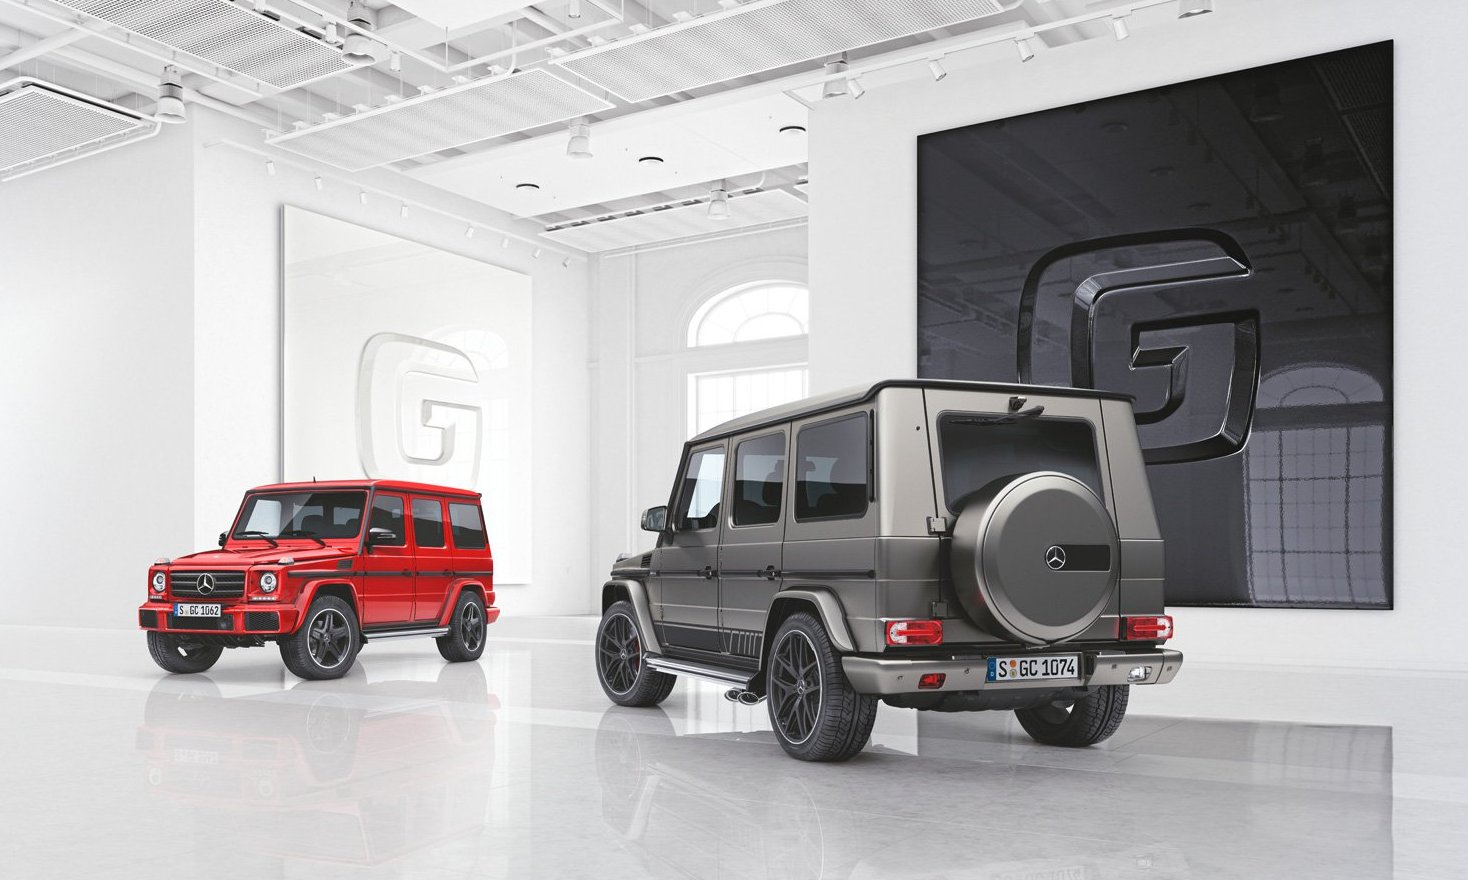 Mercedes G-Class gets two new special editions replete with high-quality appointments